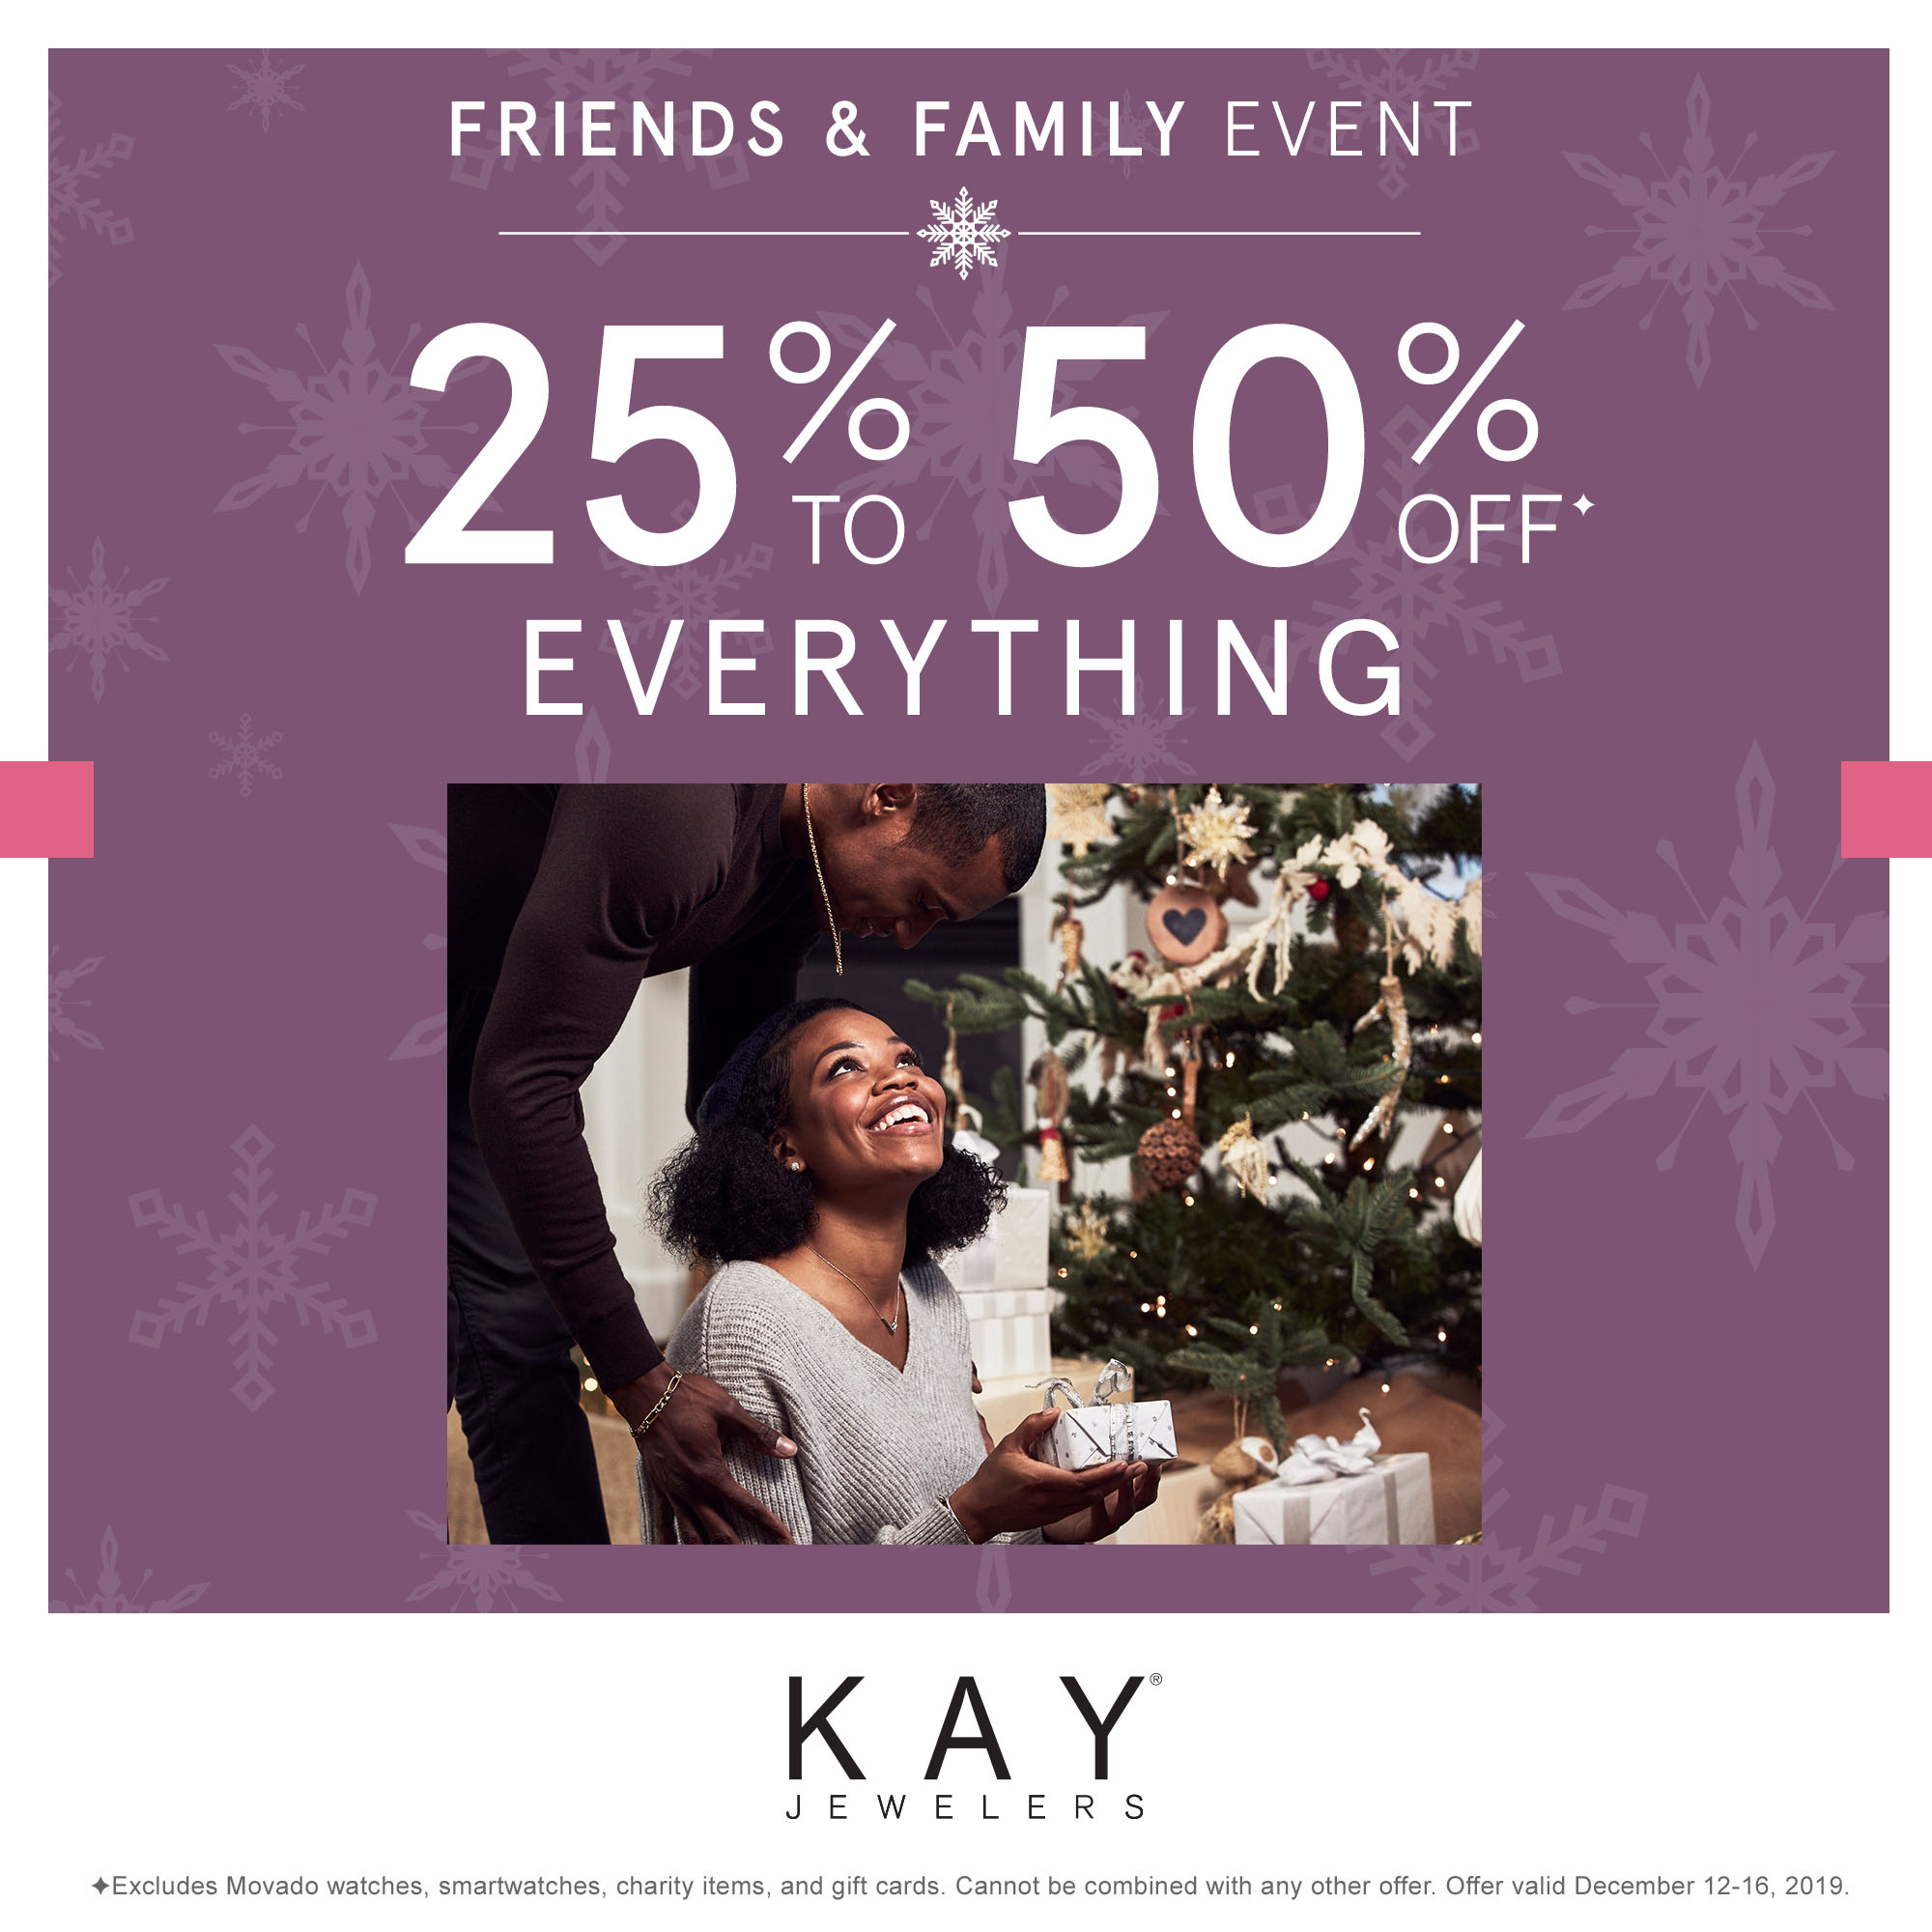 25% - 50% Off* Everything from Kay Jewelers